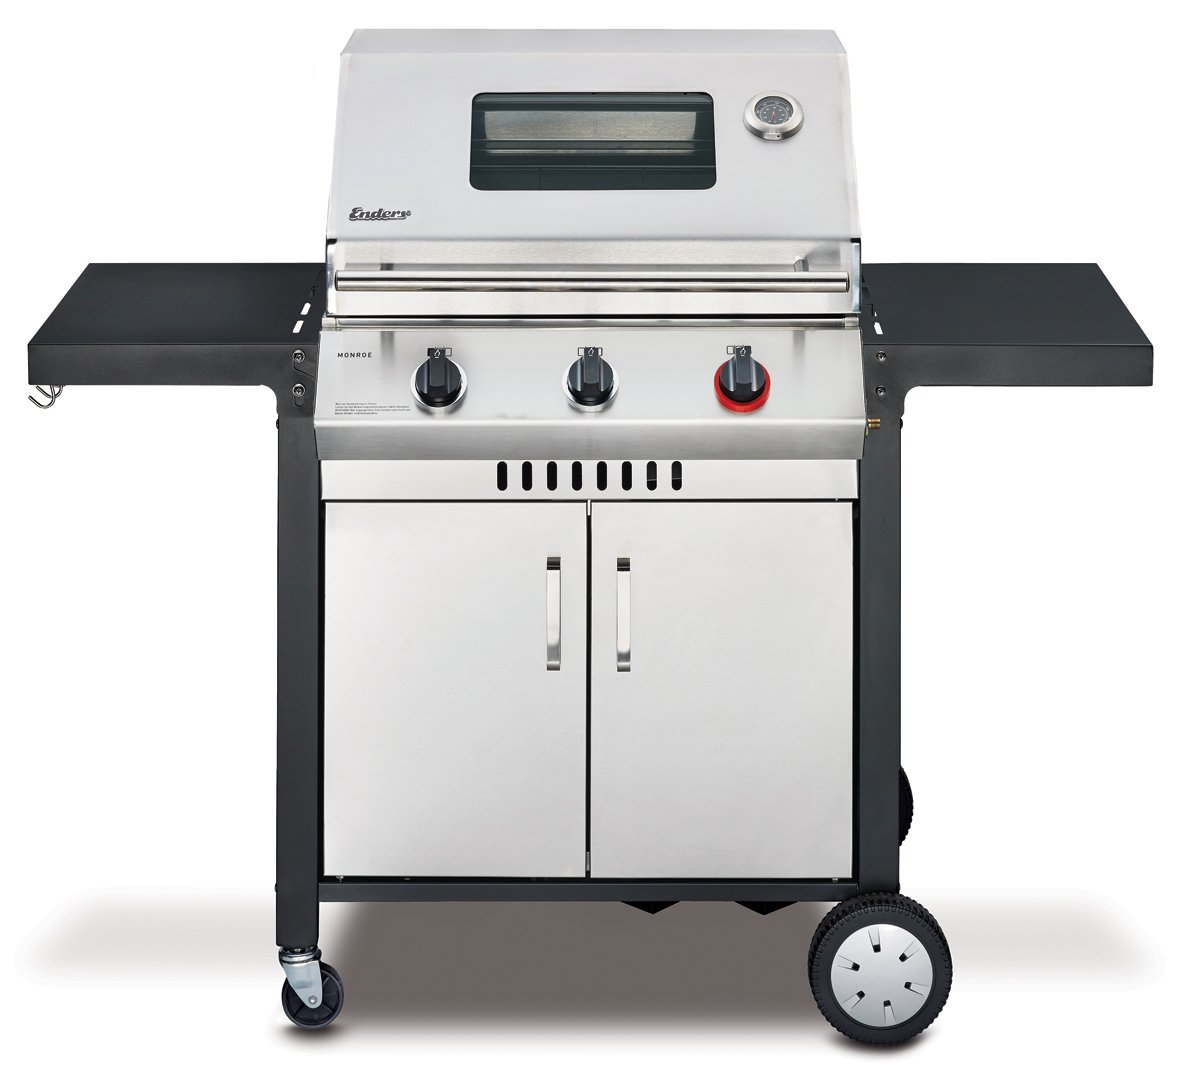 Enders BBQ Gasgrill MONROE 3 S Turbo, Gas Grill 83636*